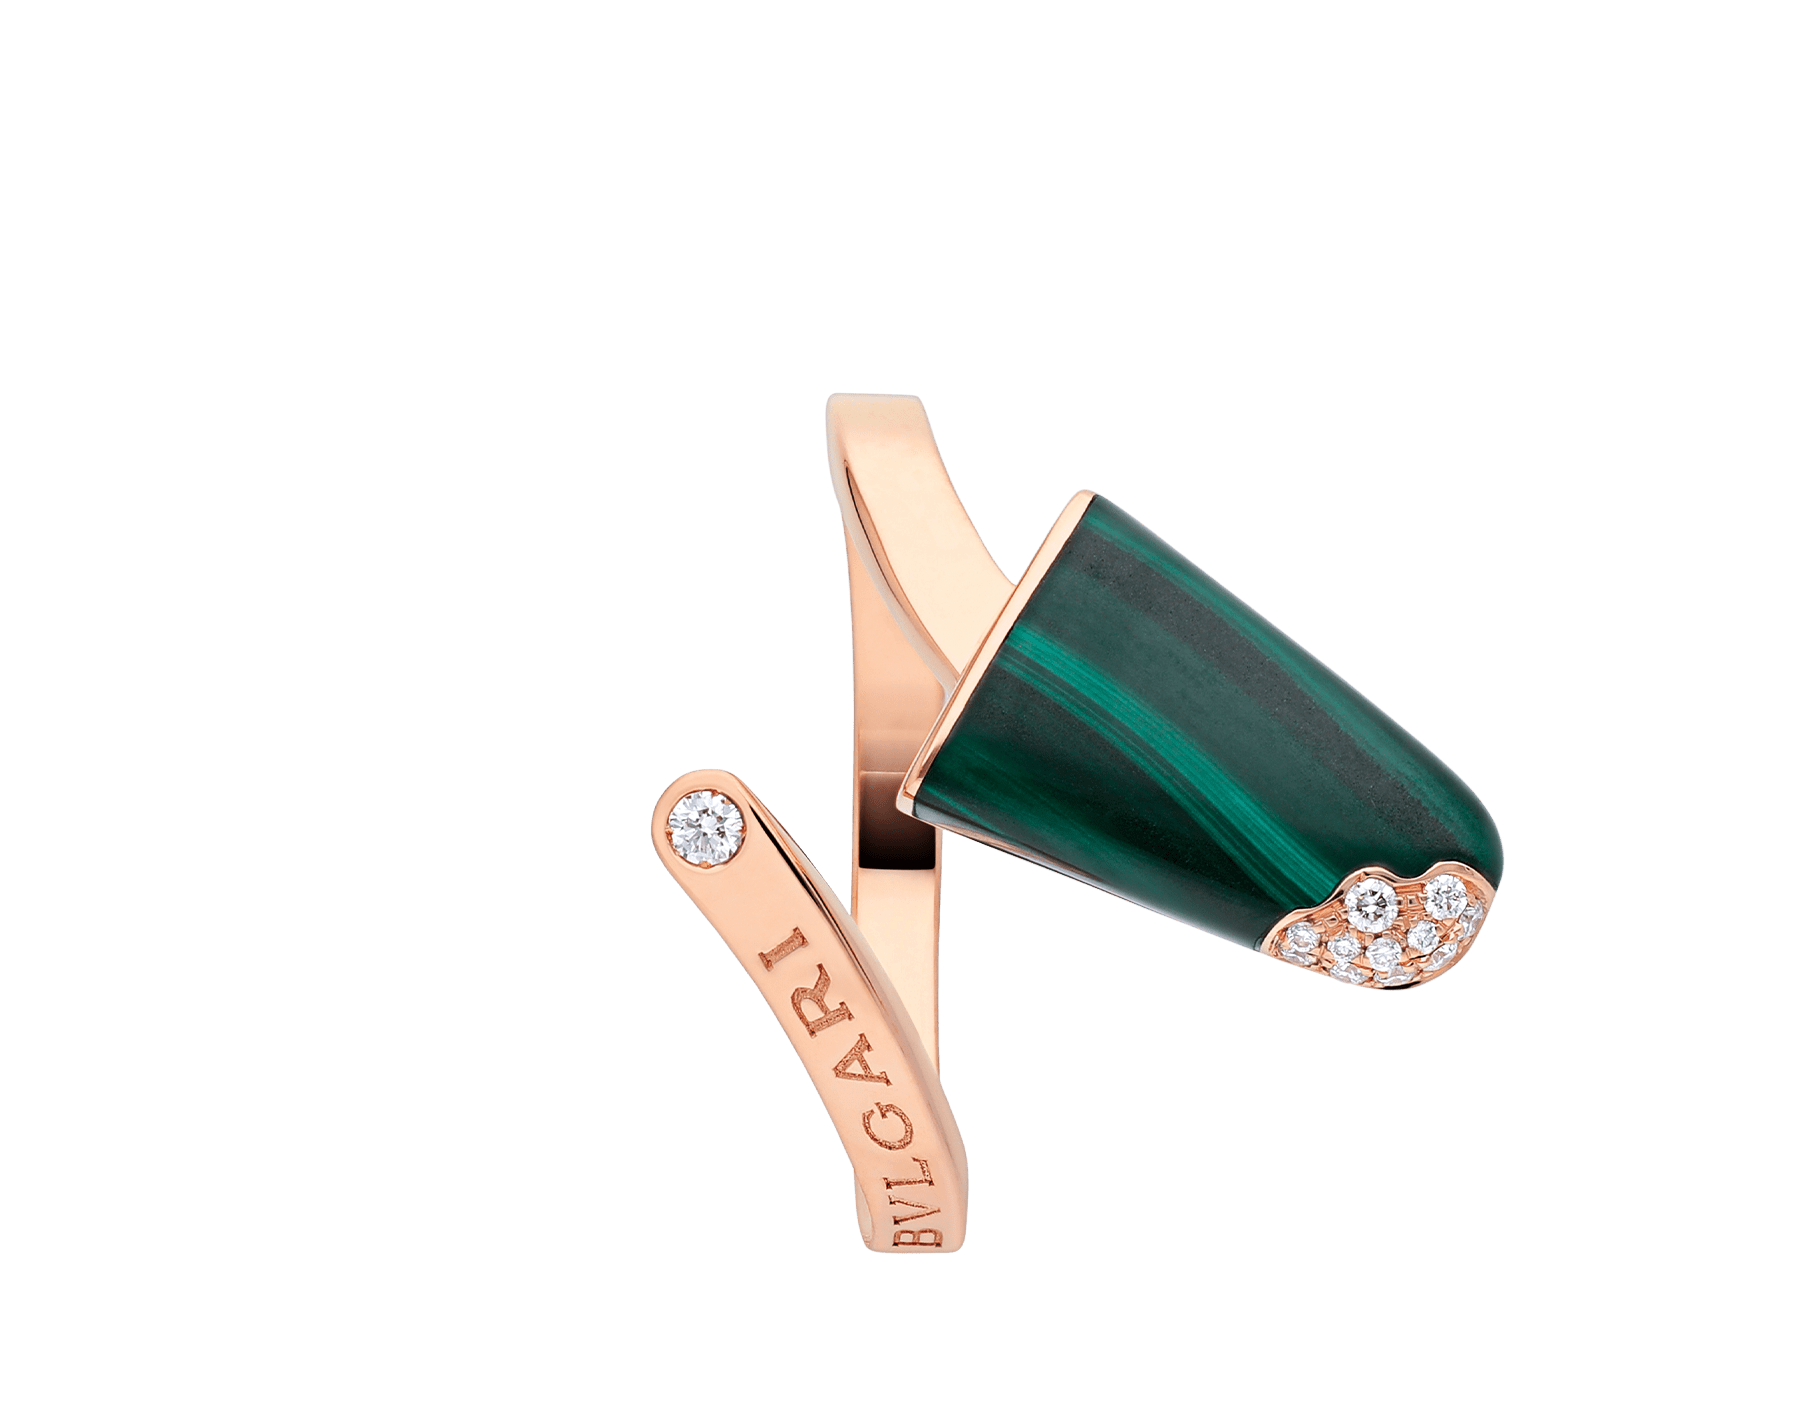 BVLGARI BVLGARI Gelati 18 kt rose gold ring set with malachite and pavé diamonds AN858329 image 3